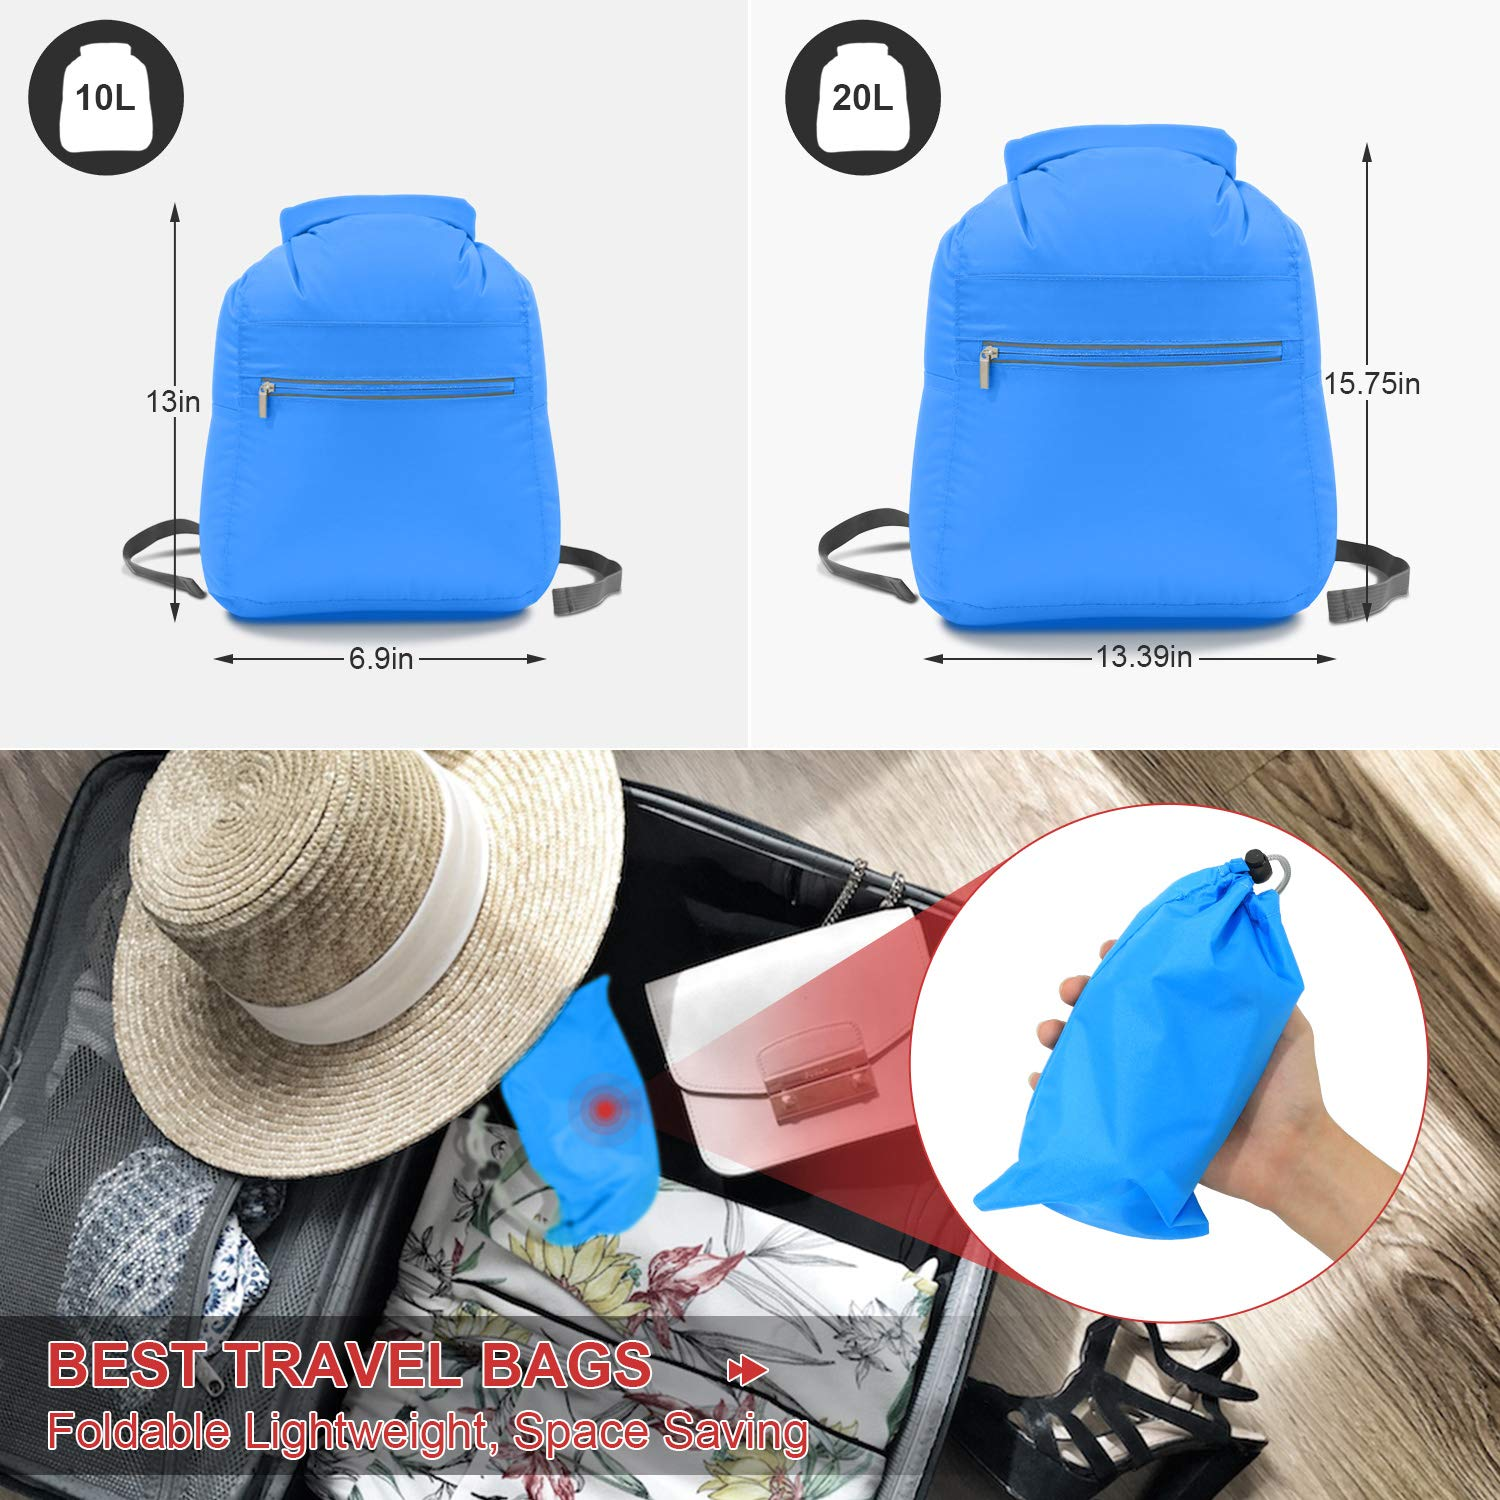 N NEWKOIN Dry Bag Waterproof Backpack, Lightweight Portable Convenient Storage Wet Dry Bag Foldable with Wet Towel Separate Bag for Rafting, Swimming, Beach, Kayaking with Waterproof Phone Case